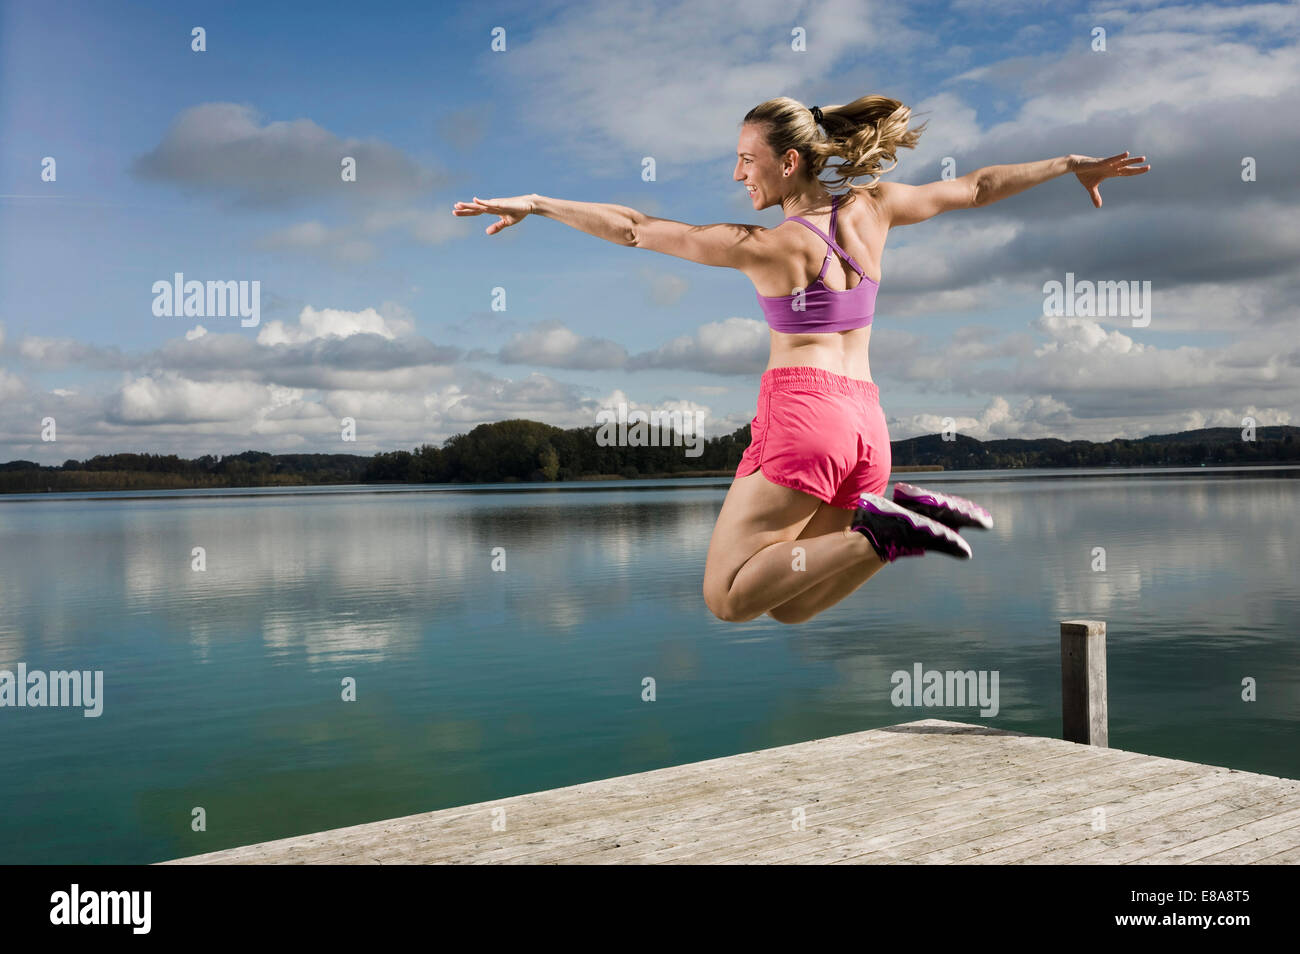 Woman jumping on jetty, Woerthsee, Bavaria, Germany - Stock Image